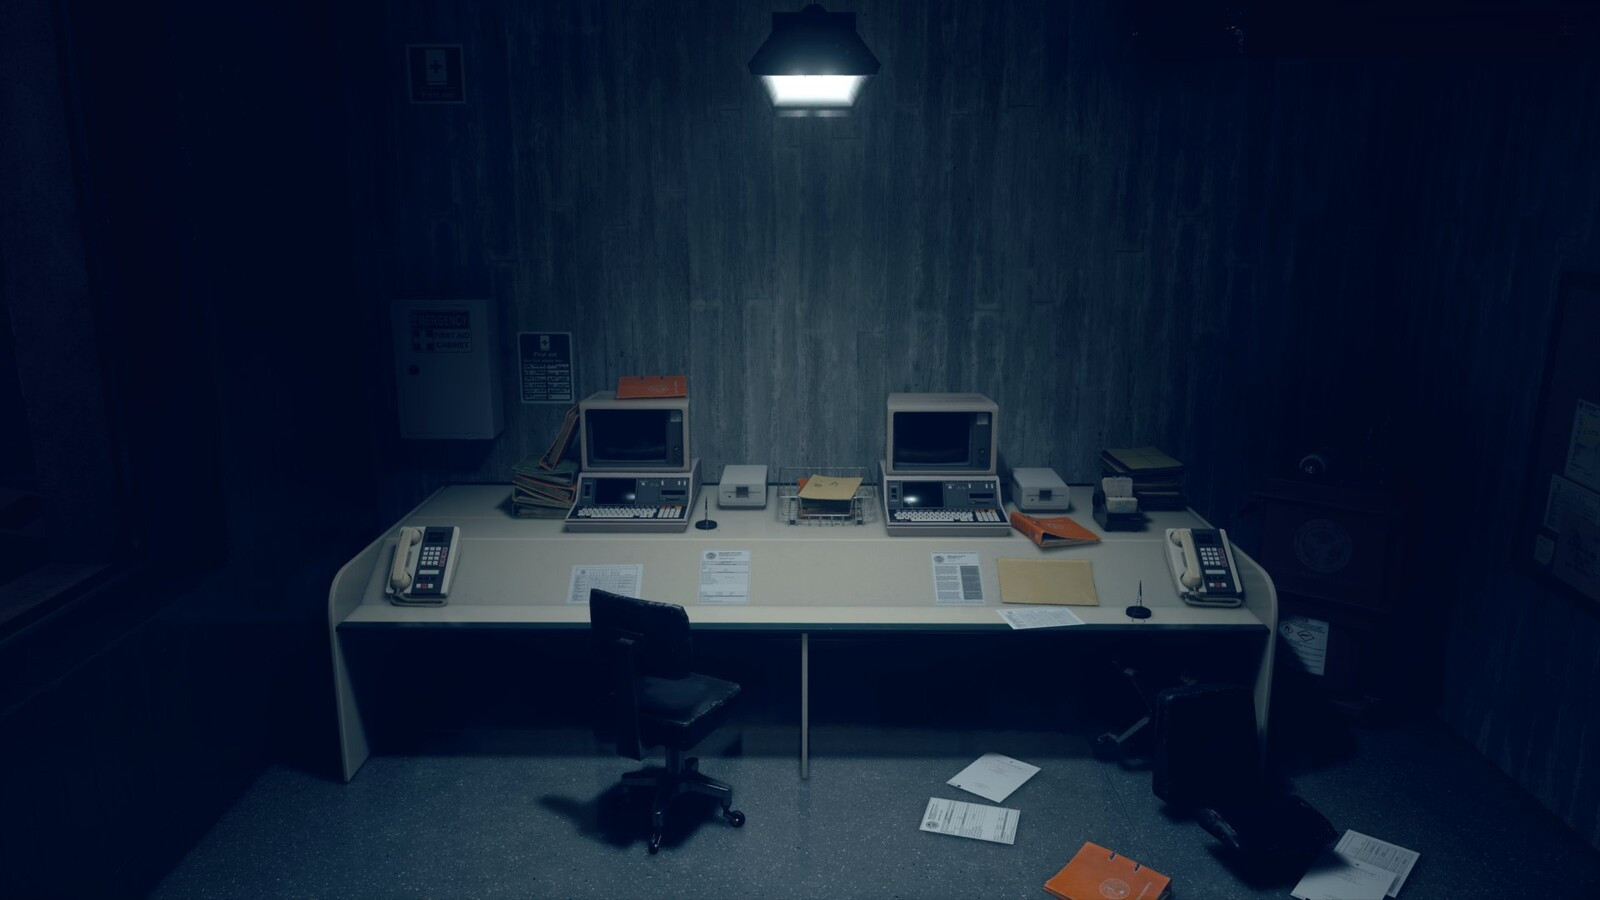 I created the desks, chairs, computers, floppy drives and phones. Screenshot by Ewan Wilson.